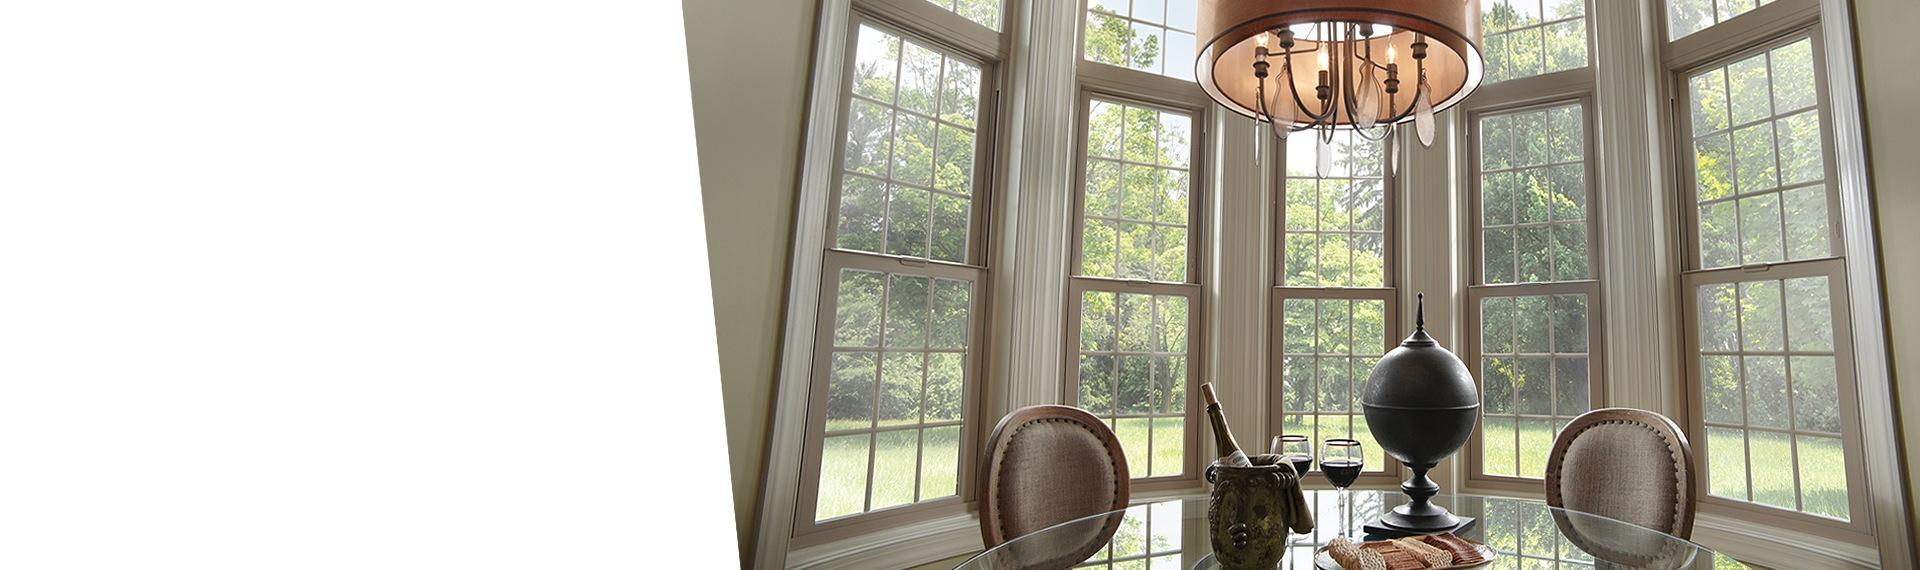 Tuscany Series vinyl double hung windows in tan